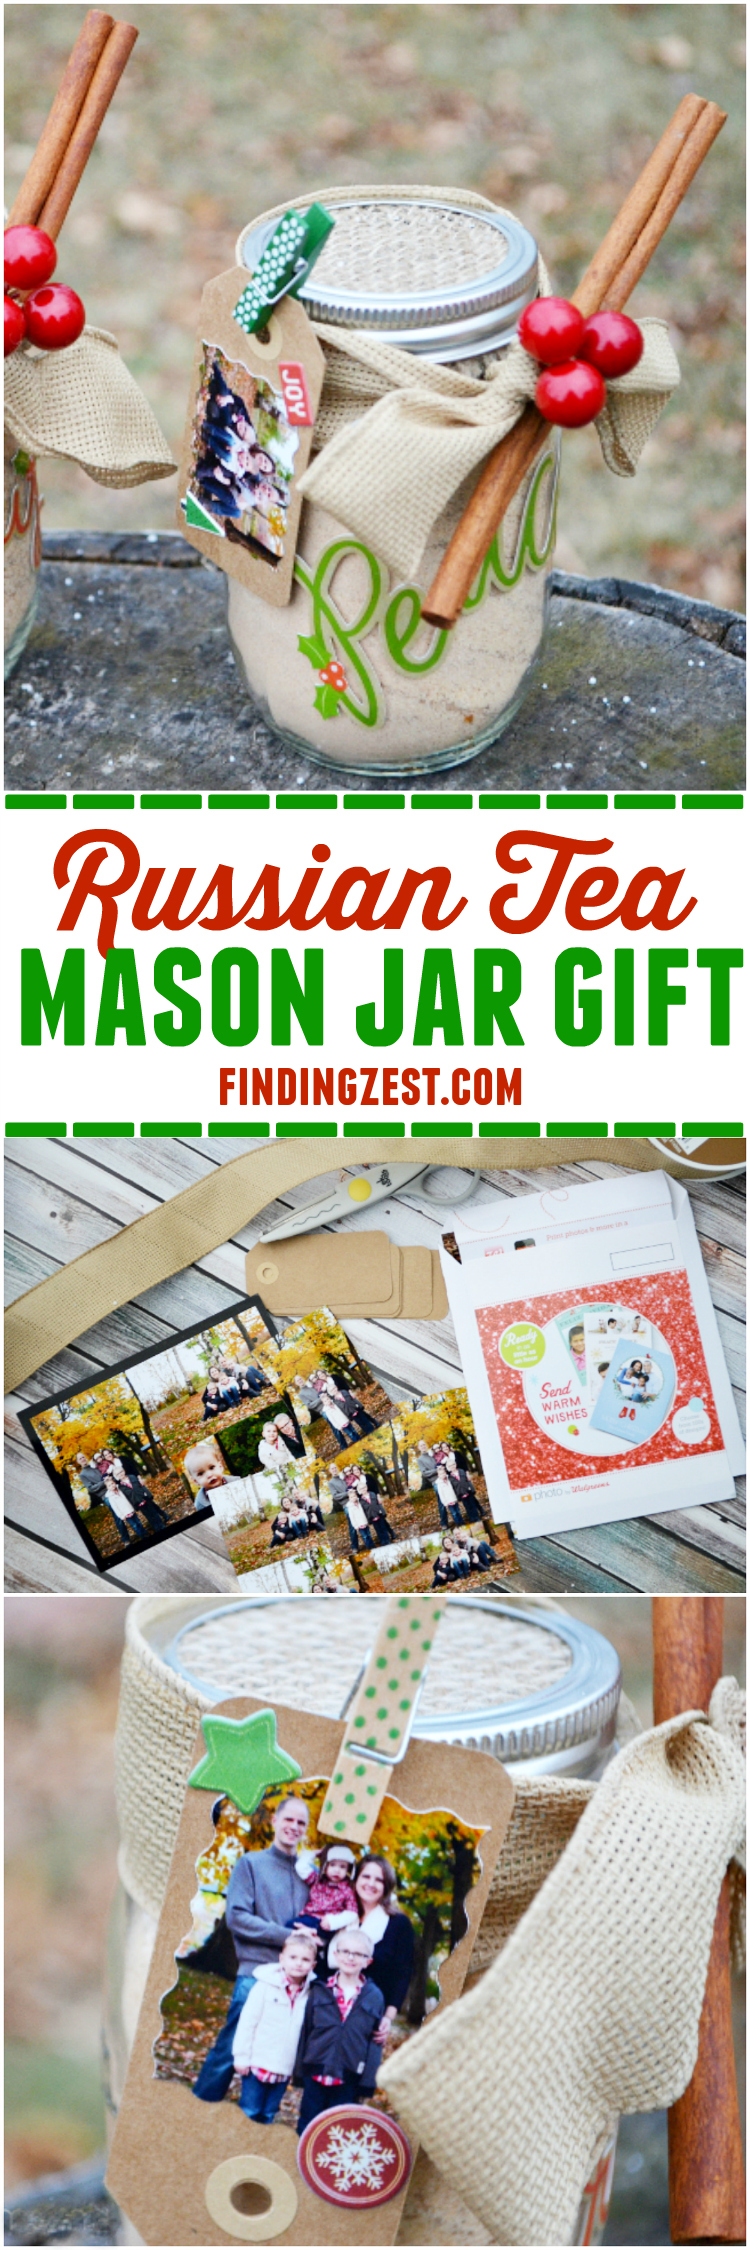 This DIY Russian Tea Mason Jar Gift with Photo Tag is a perfect homemade holiday gift for Christmas!